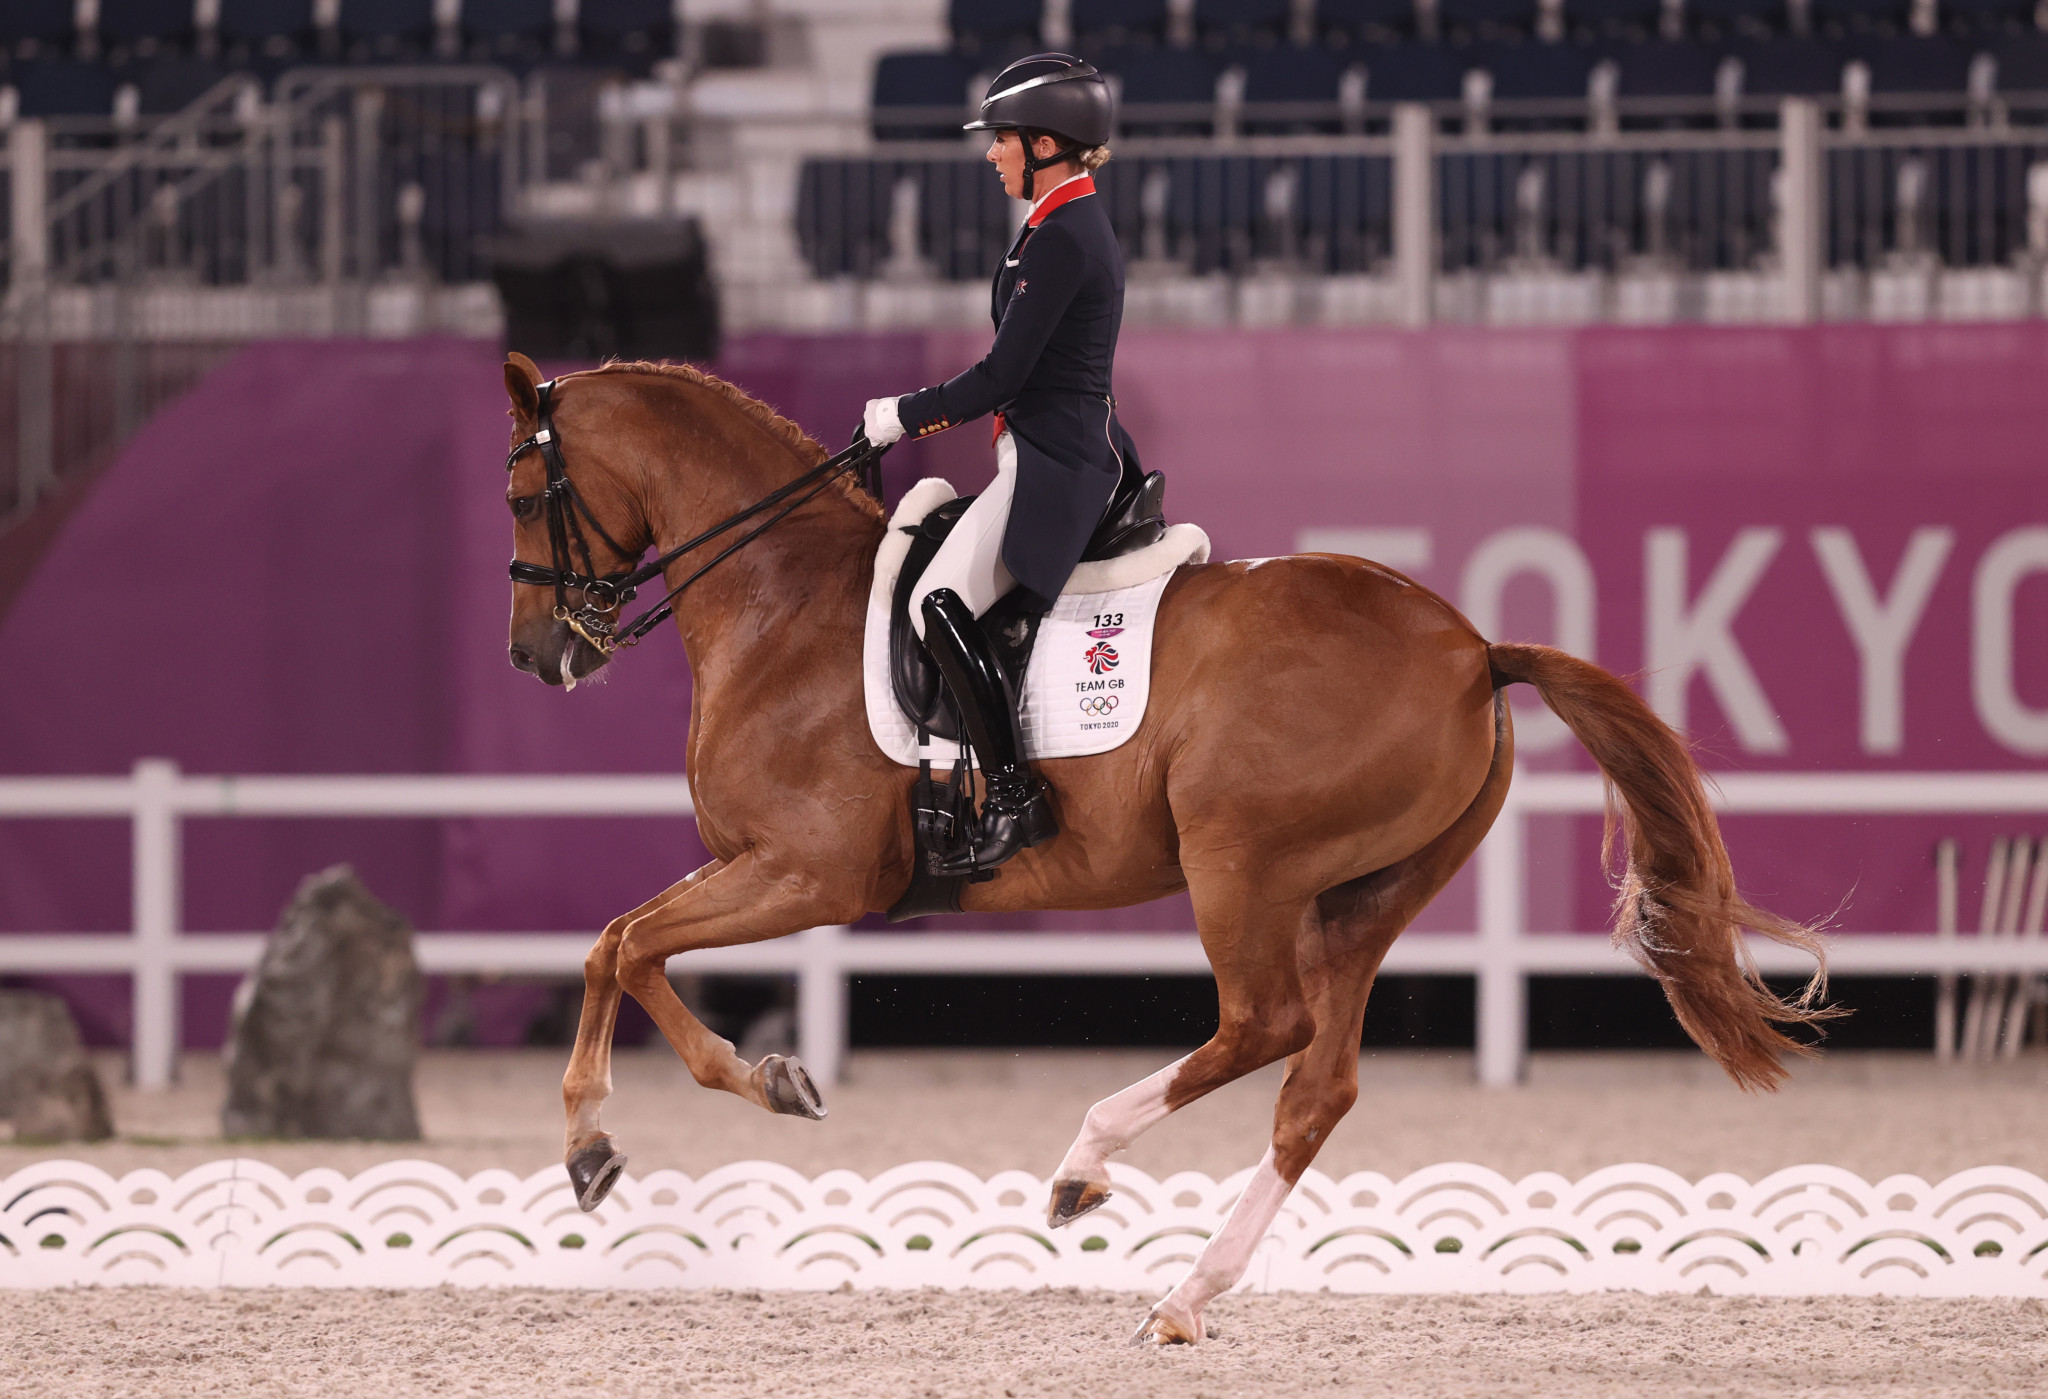 Back-to-back defending champion Charlotte Dujardin had to settle for a bronze medal at this Olympic Games